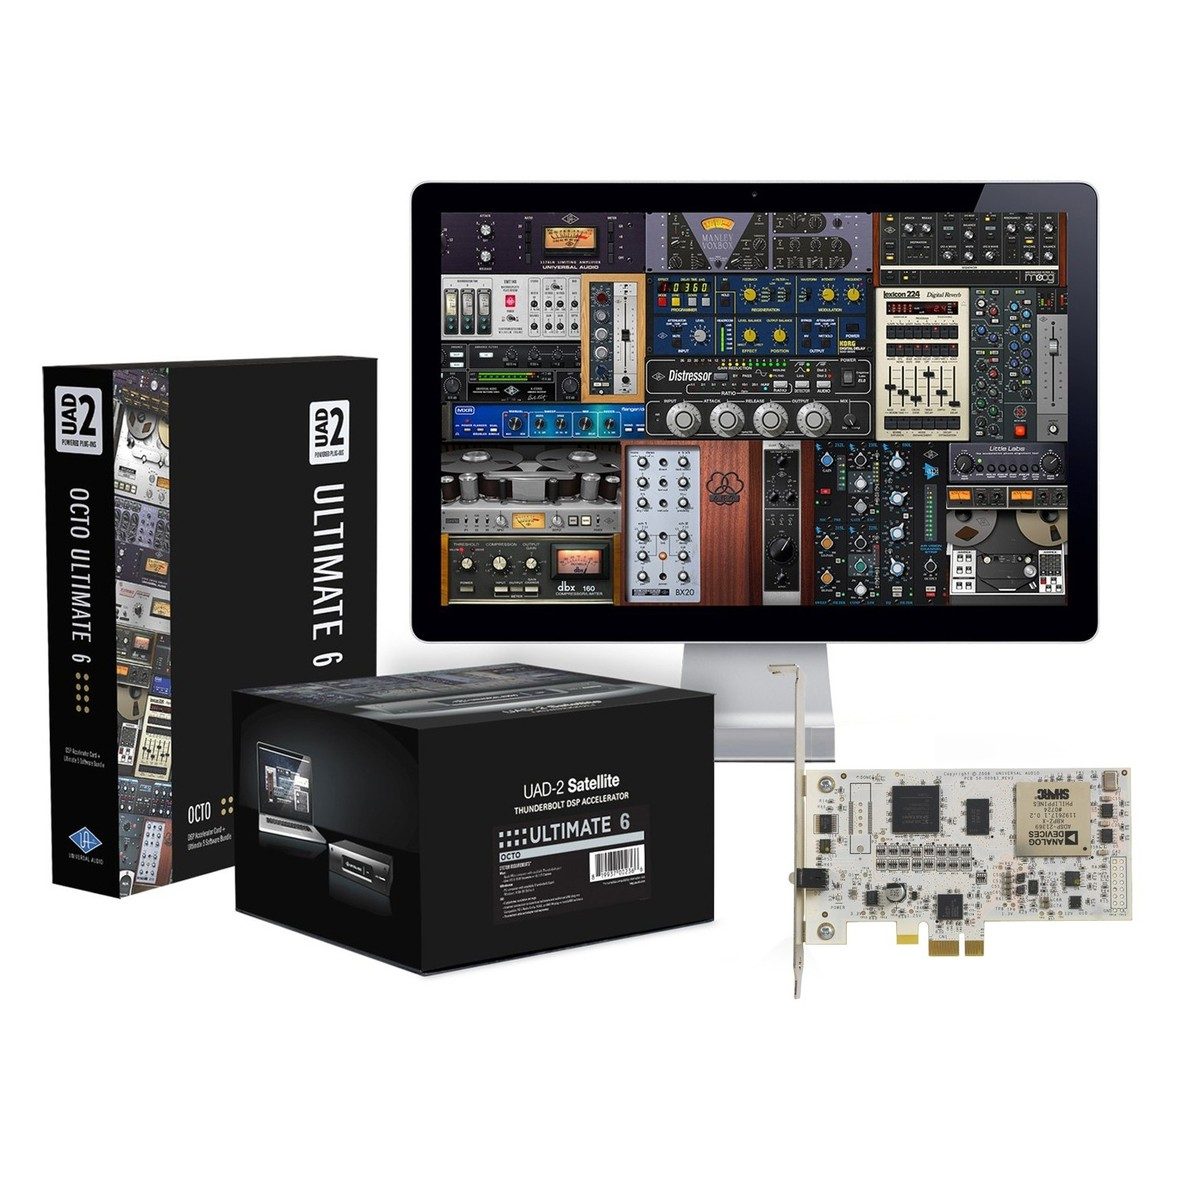 Universal audio uad 2 octo ultimate 6 dsp accelerator card na universal audio uad 2 octo ultimate 6 dsp accelerator card main loading zoom stopboris Image collections